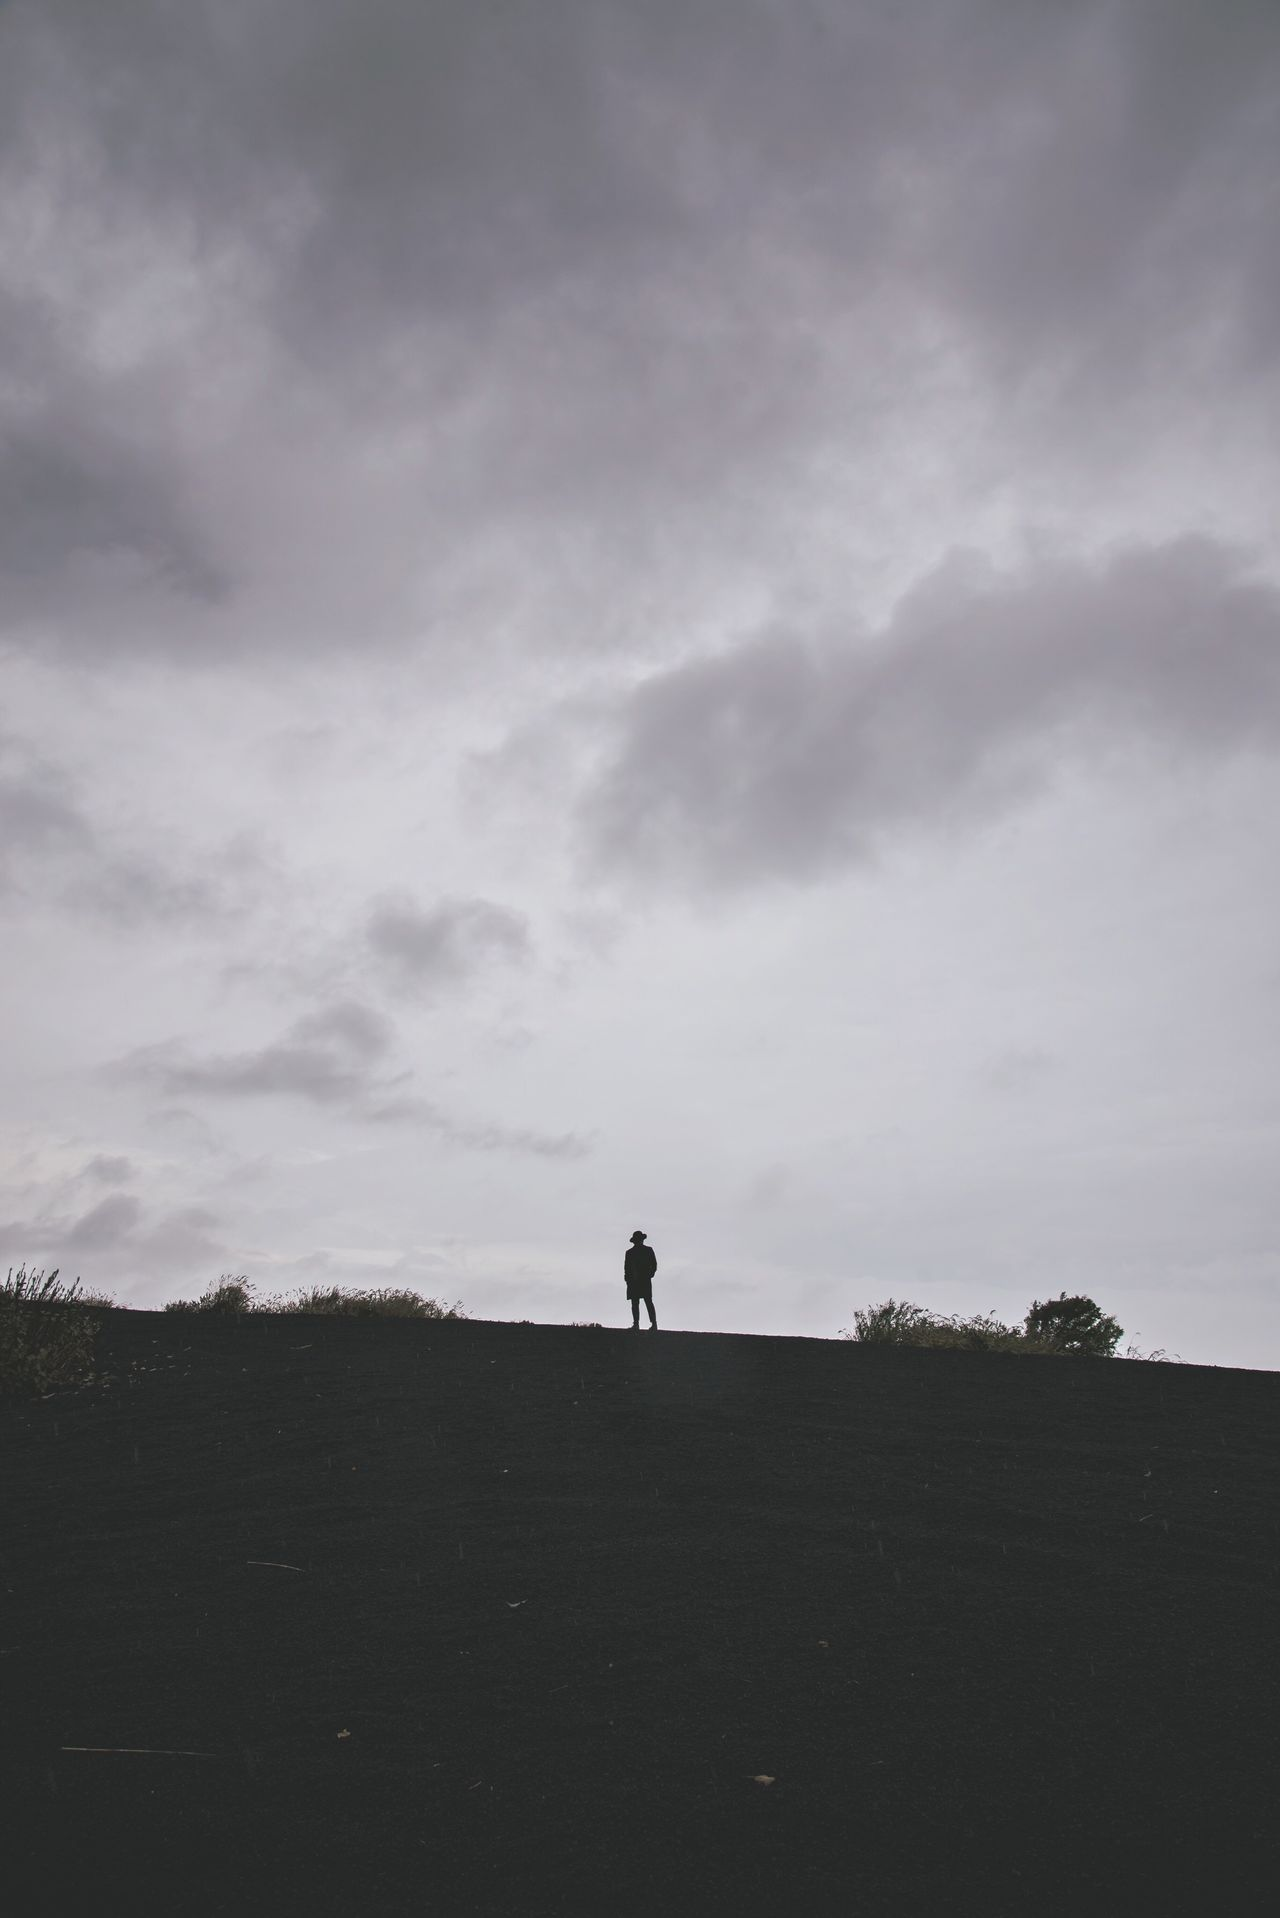 Tiny man One Person Landscape Nature One Man Only Minimalism Minimalist Minimal Traveling Cloud - Sky Real People Full Length Outdoors Men